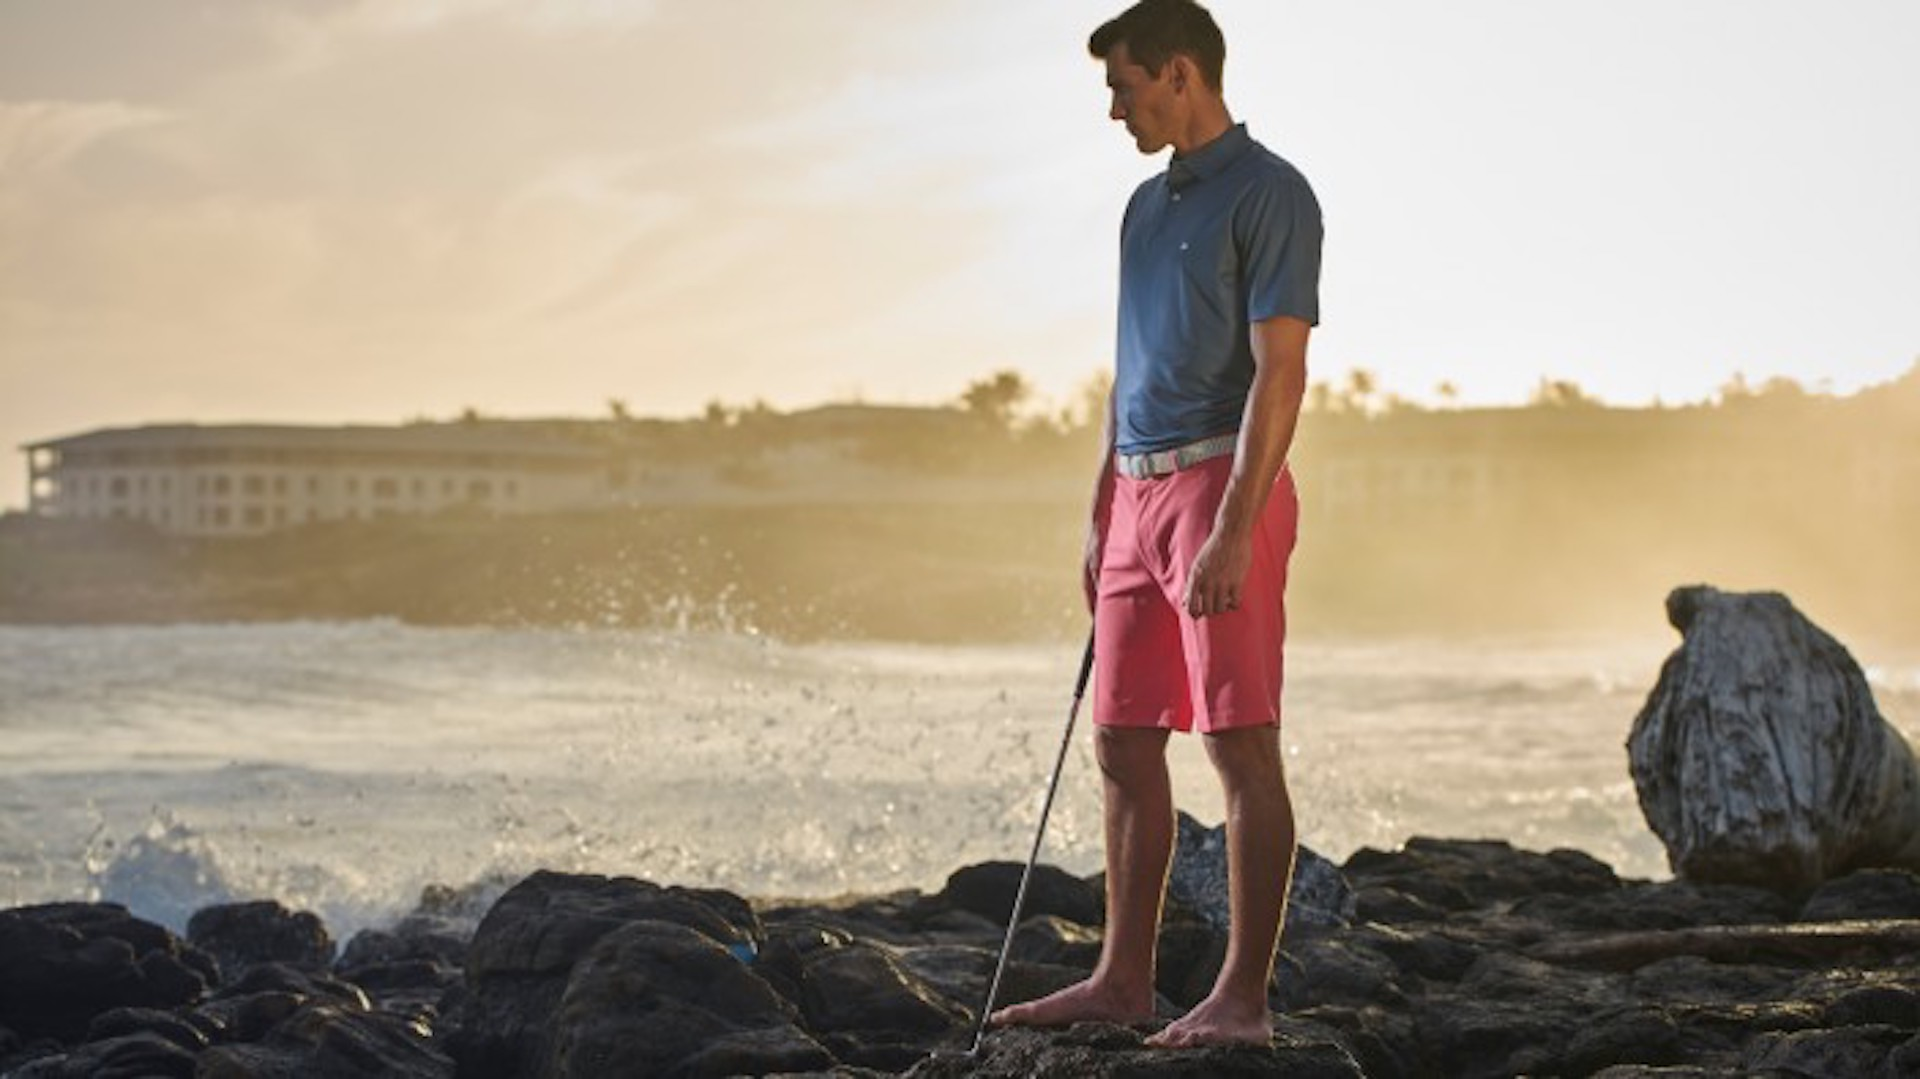 Peter Millar apparel contract up for grabs